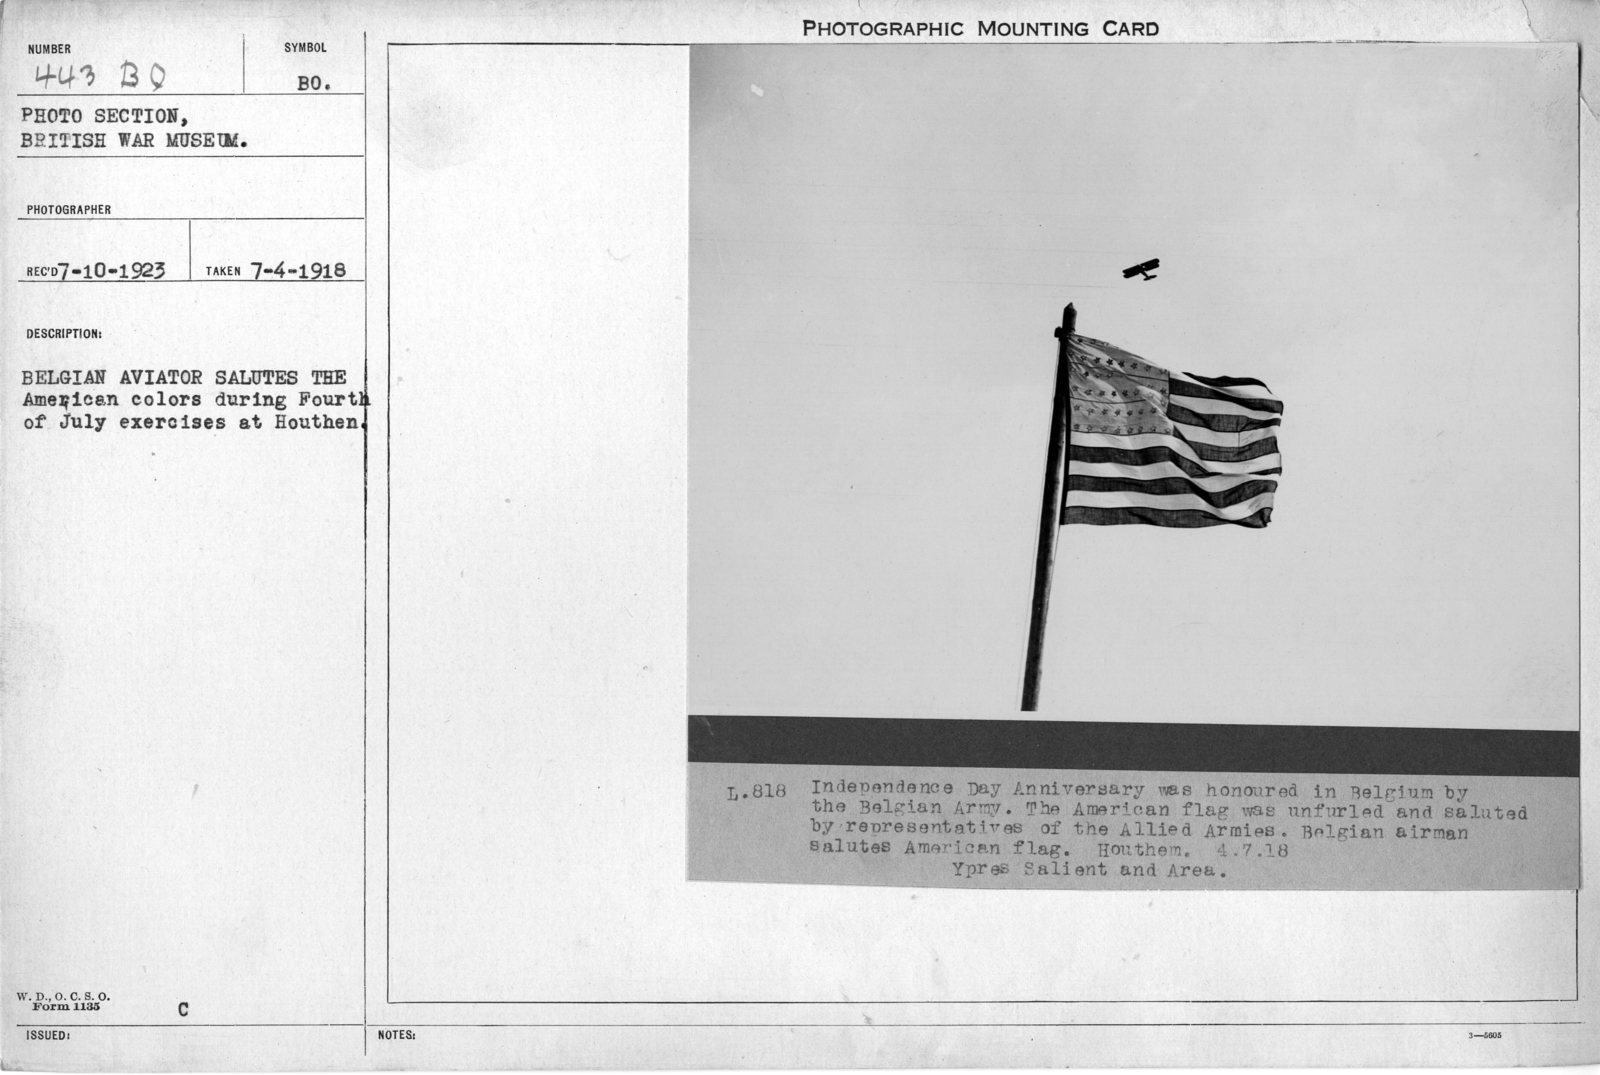 Belgium aviator salutes the American colors during Fourth of July exercises at Houthem; 7/4/1918